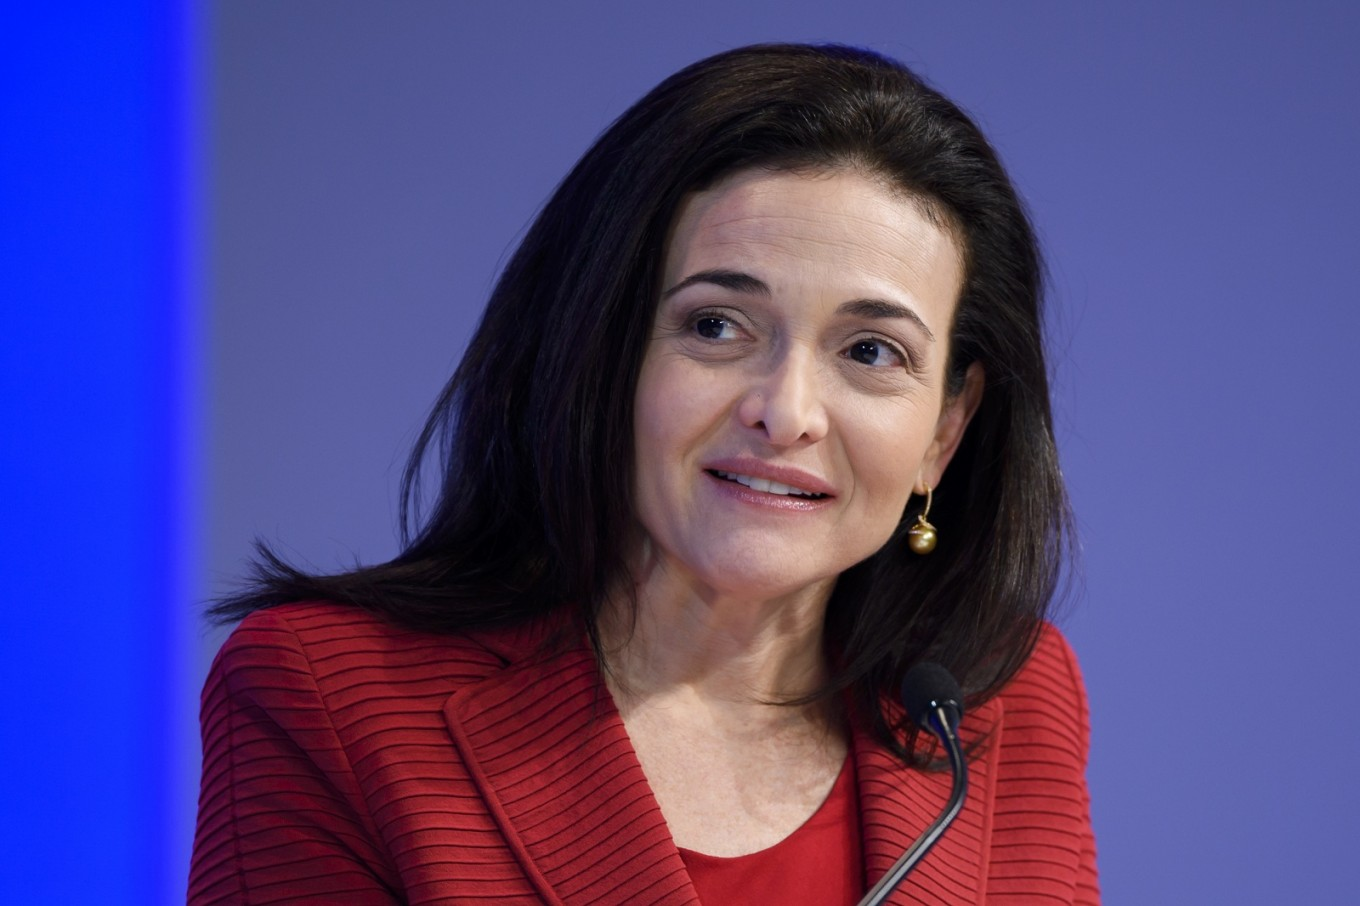 Facebook isn't taking political ads 'for the money,' COO Sandberg says